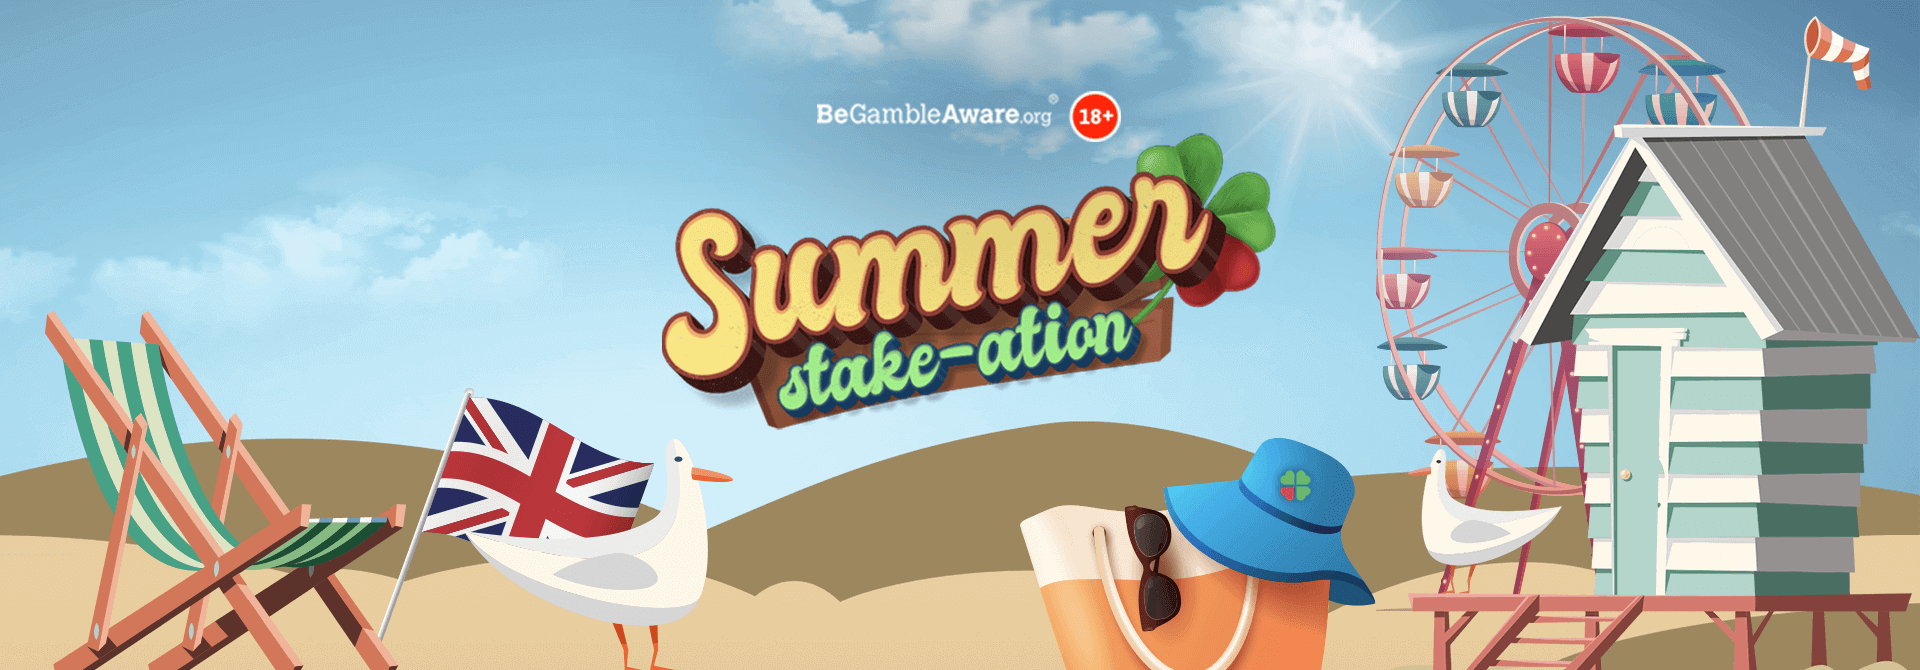 Have you taken home a share of £20,000 with our Summer Stake-ation?